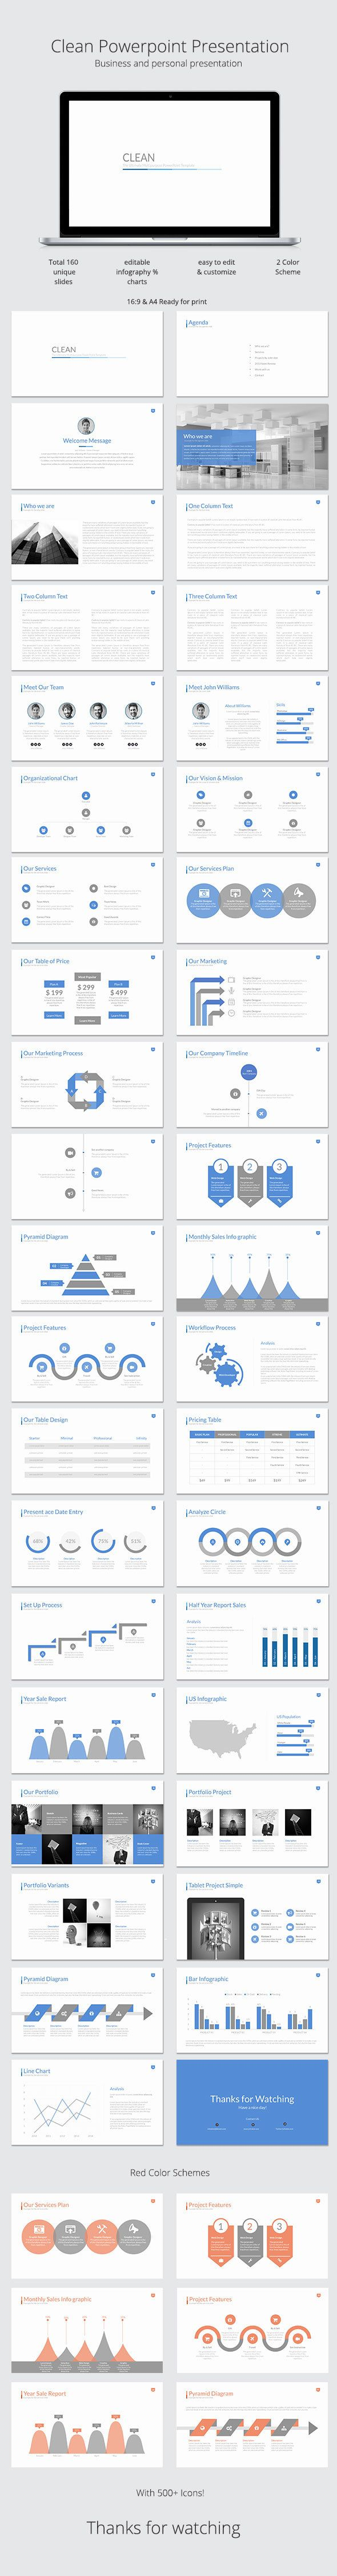 Clean Powerpoint Template - Business PowerPoint Templates